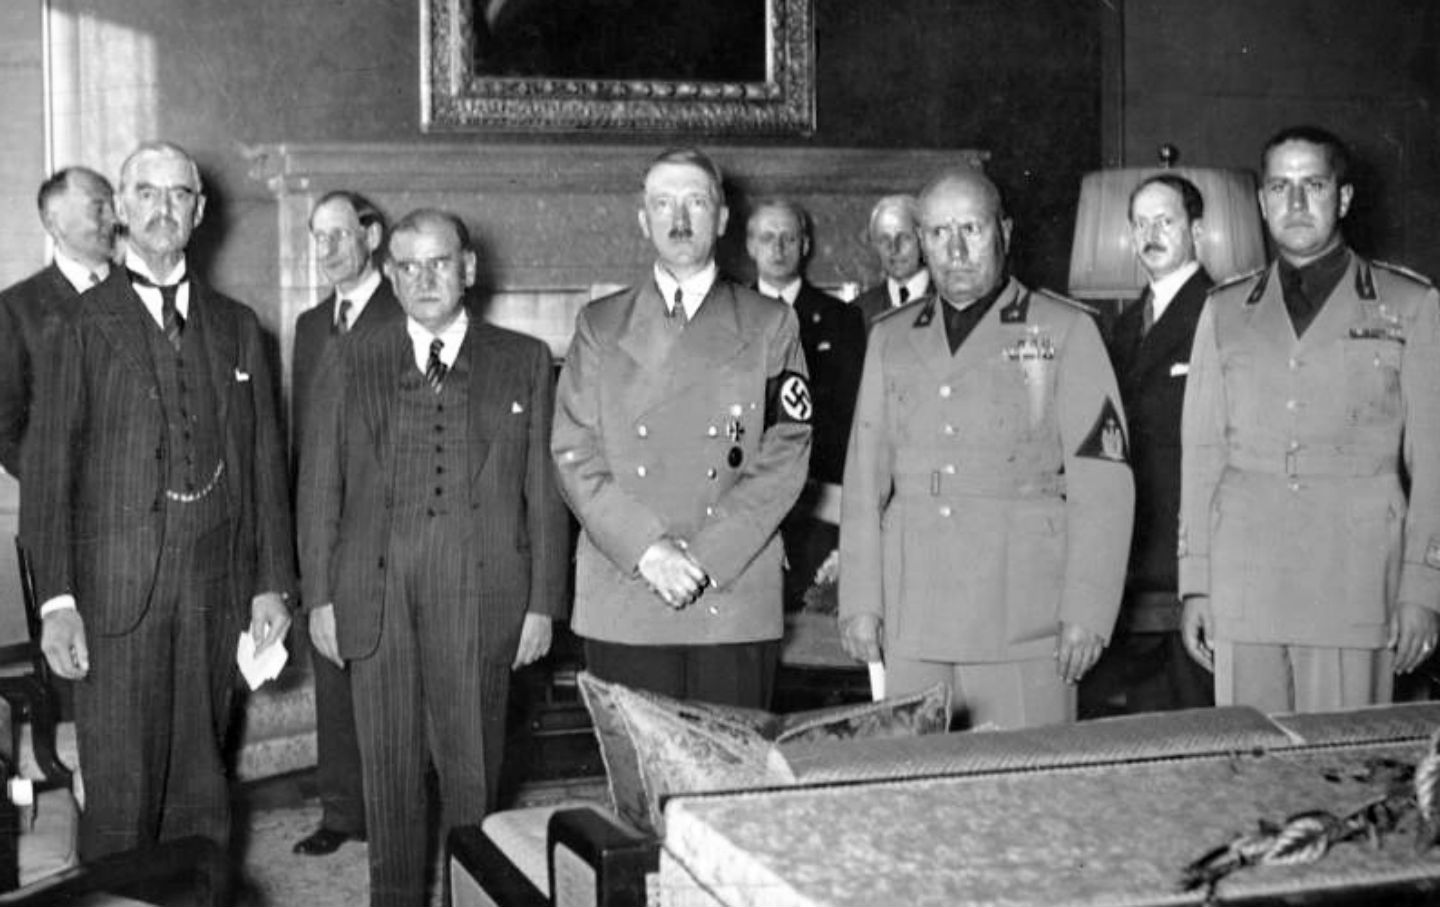 From left to right: Neville Chamberlain, Daladier, Adolf Hitler, Benito  Mussolini, and Galeazzo Ciano before signing the Munich Agreement.